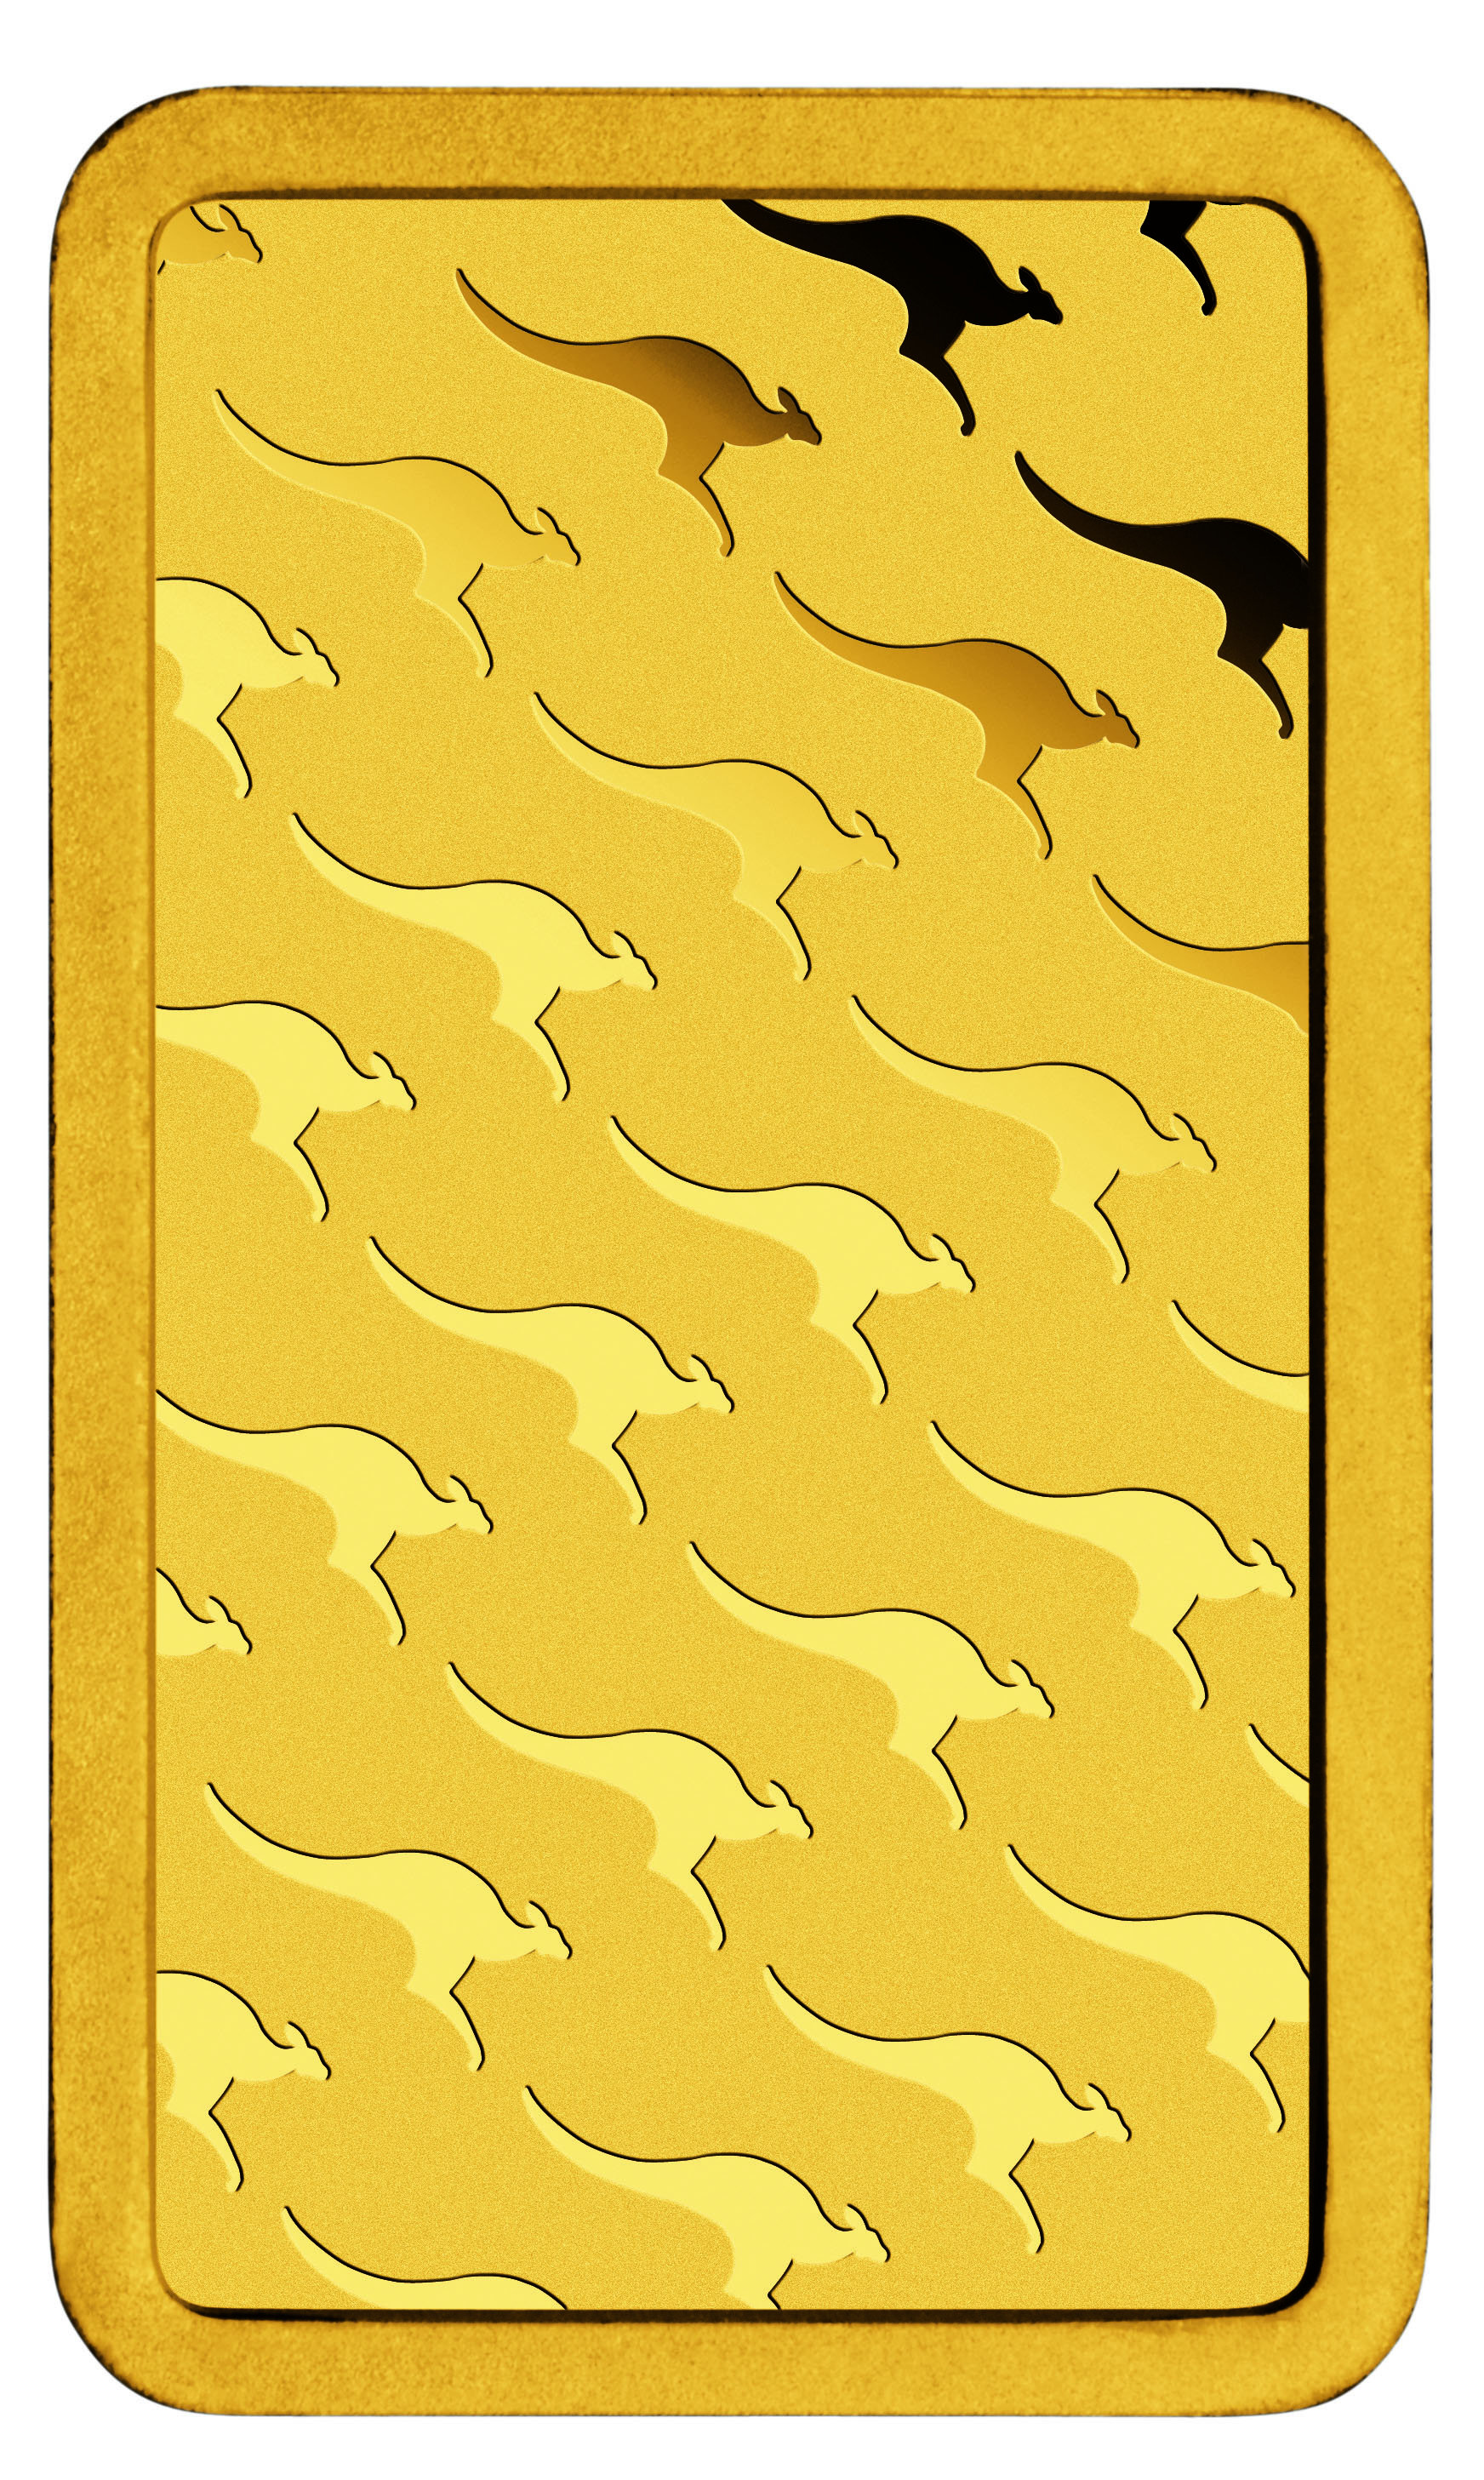 Visit the Gold Industry Group booth to go in the draw to win this Kangaroo Minted Gold Bar from The Perth Mint!